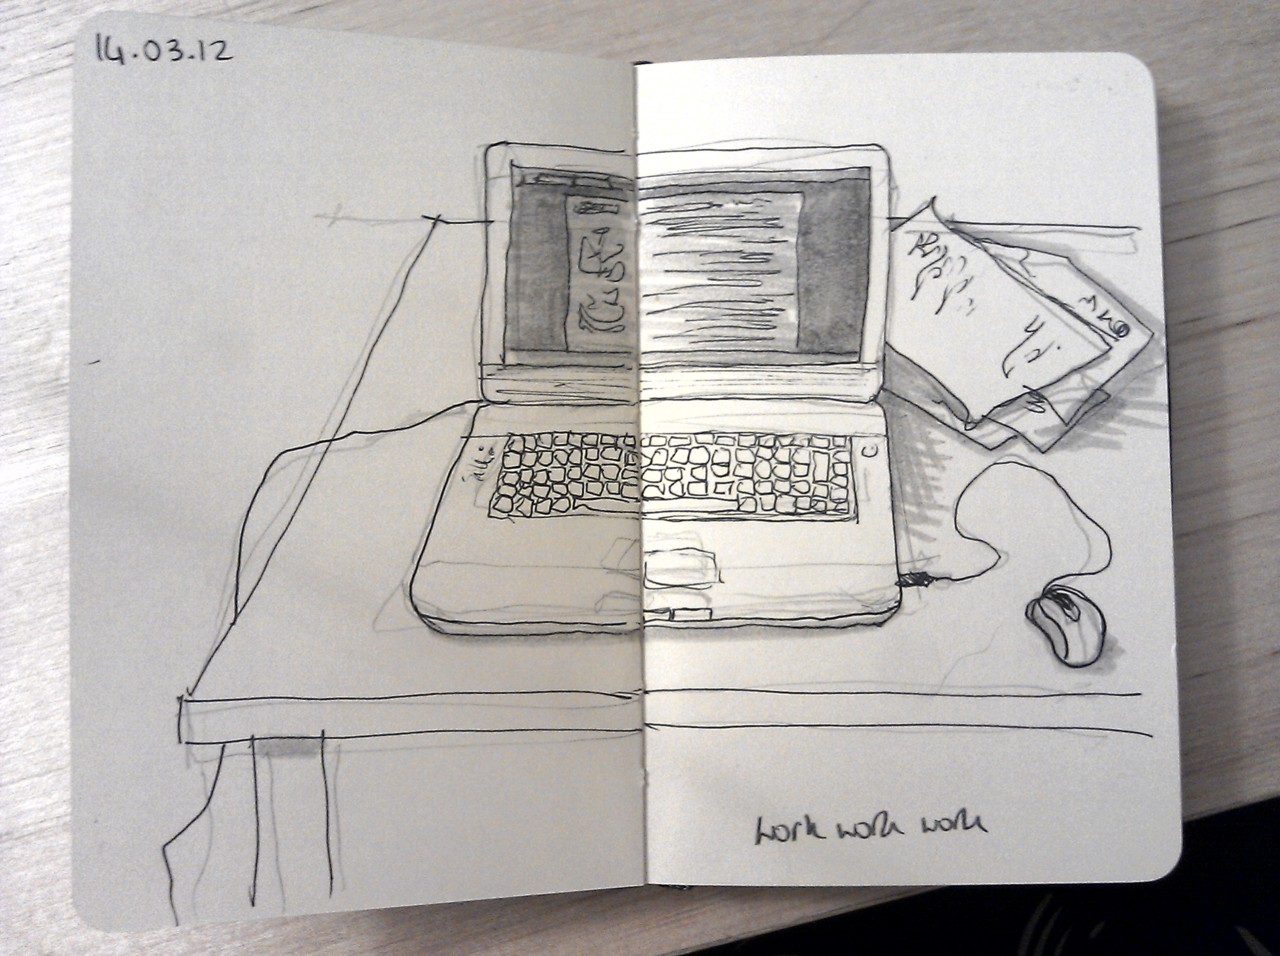 365 drawings later … day 43 … work work work (I reckon I'll be looking at this every evening for the foreseeable)